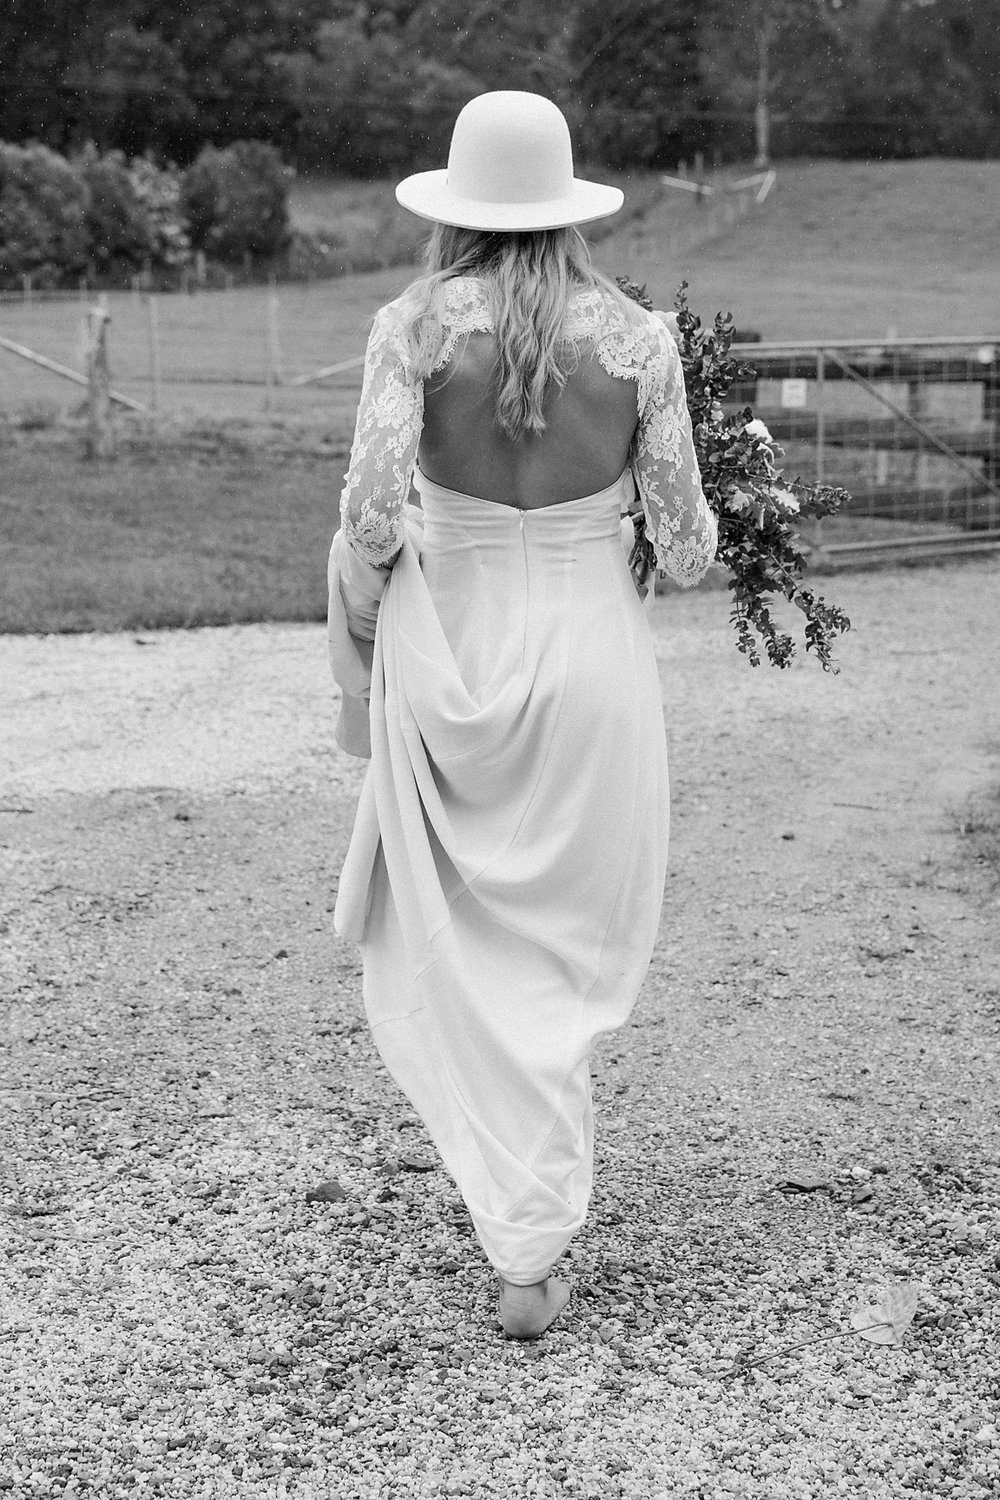 Dress by  Studio C Bridal . Photography by  Poppy & Sage Photography .